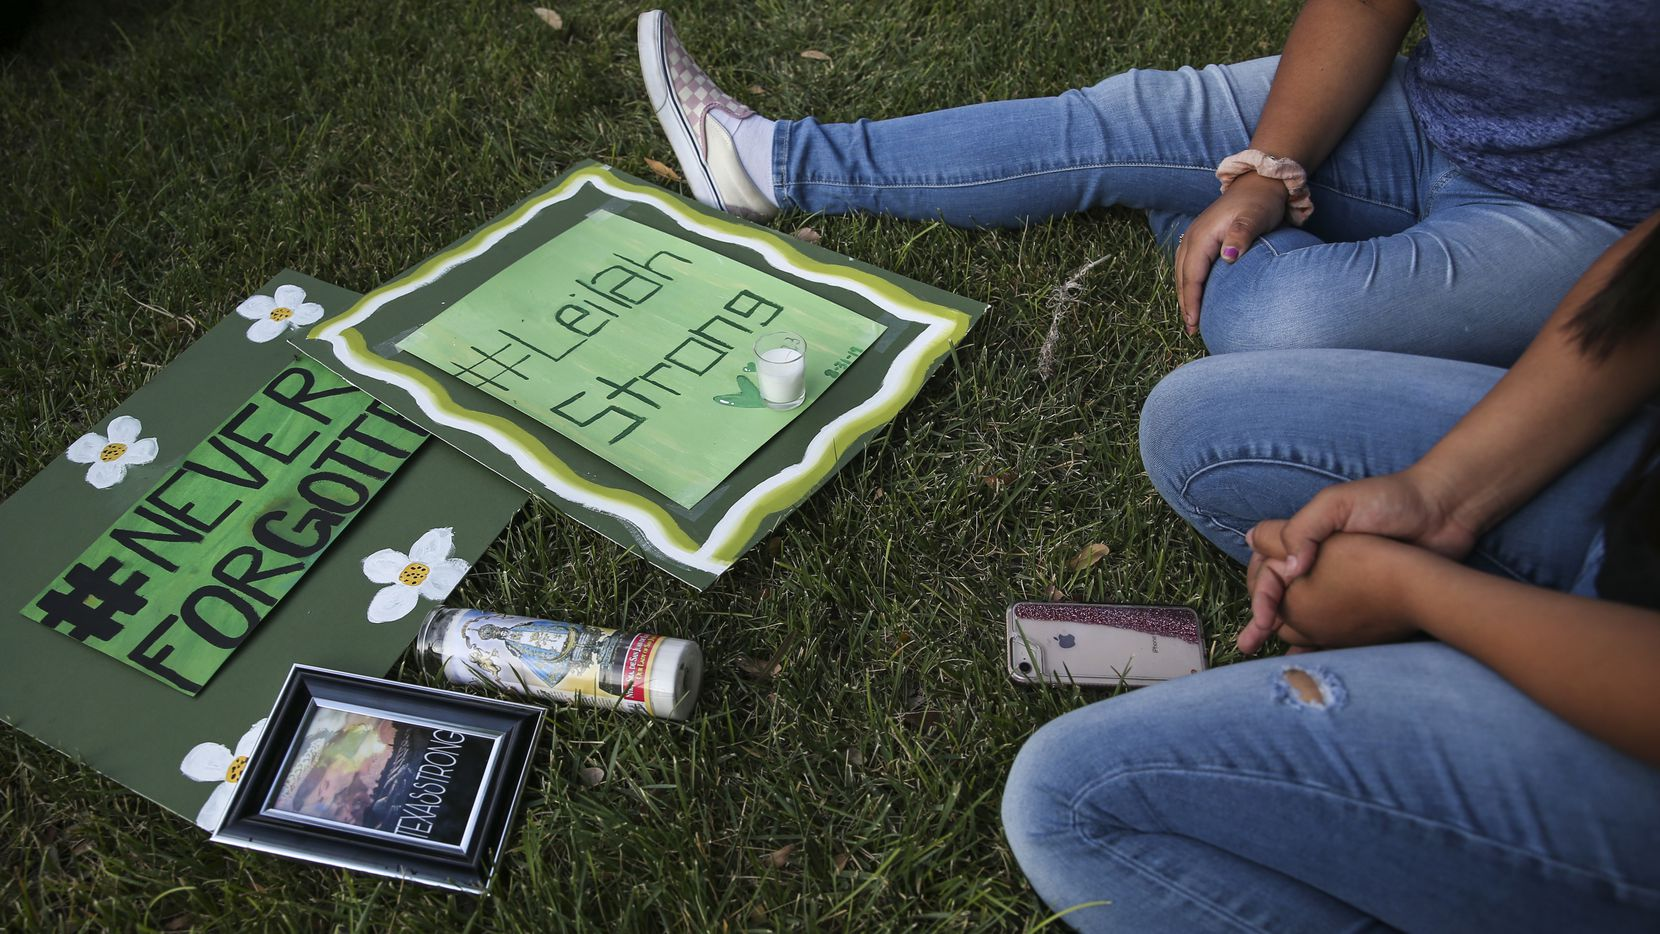 Sajeili Carrasco, 15, bottom right, and Celia Lopez, 15, who were friends with Leilah Hernandez, a 15-year-old Odessa High sophomore who was killed in the attack, gather for a prayer vigil at the University of Texas Permian Basin on Sunday, Sept. 1, 2019.